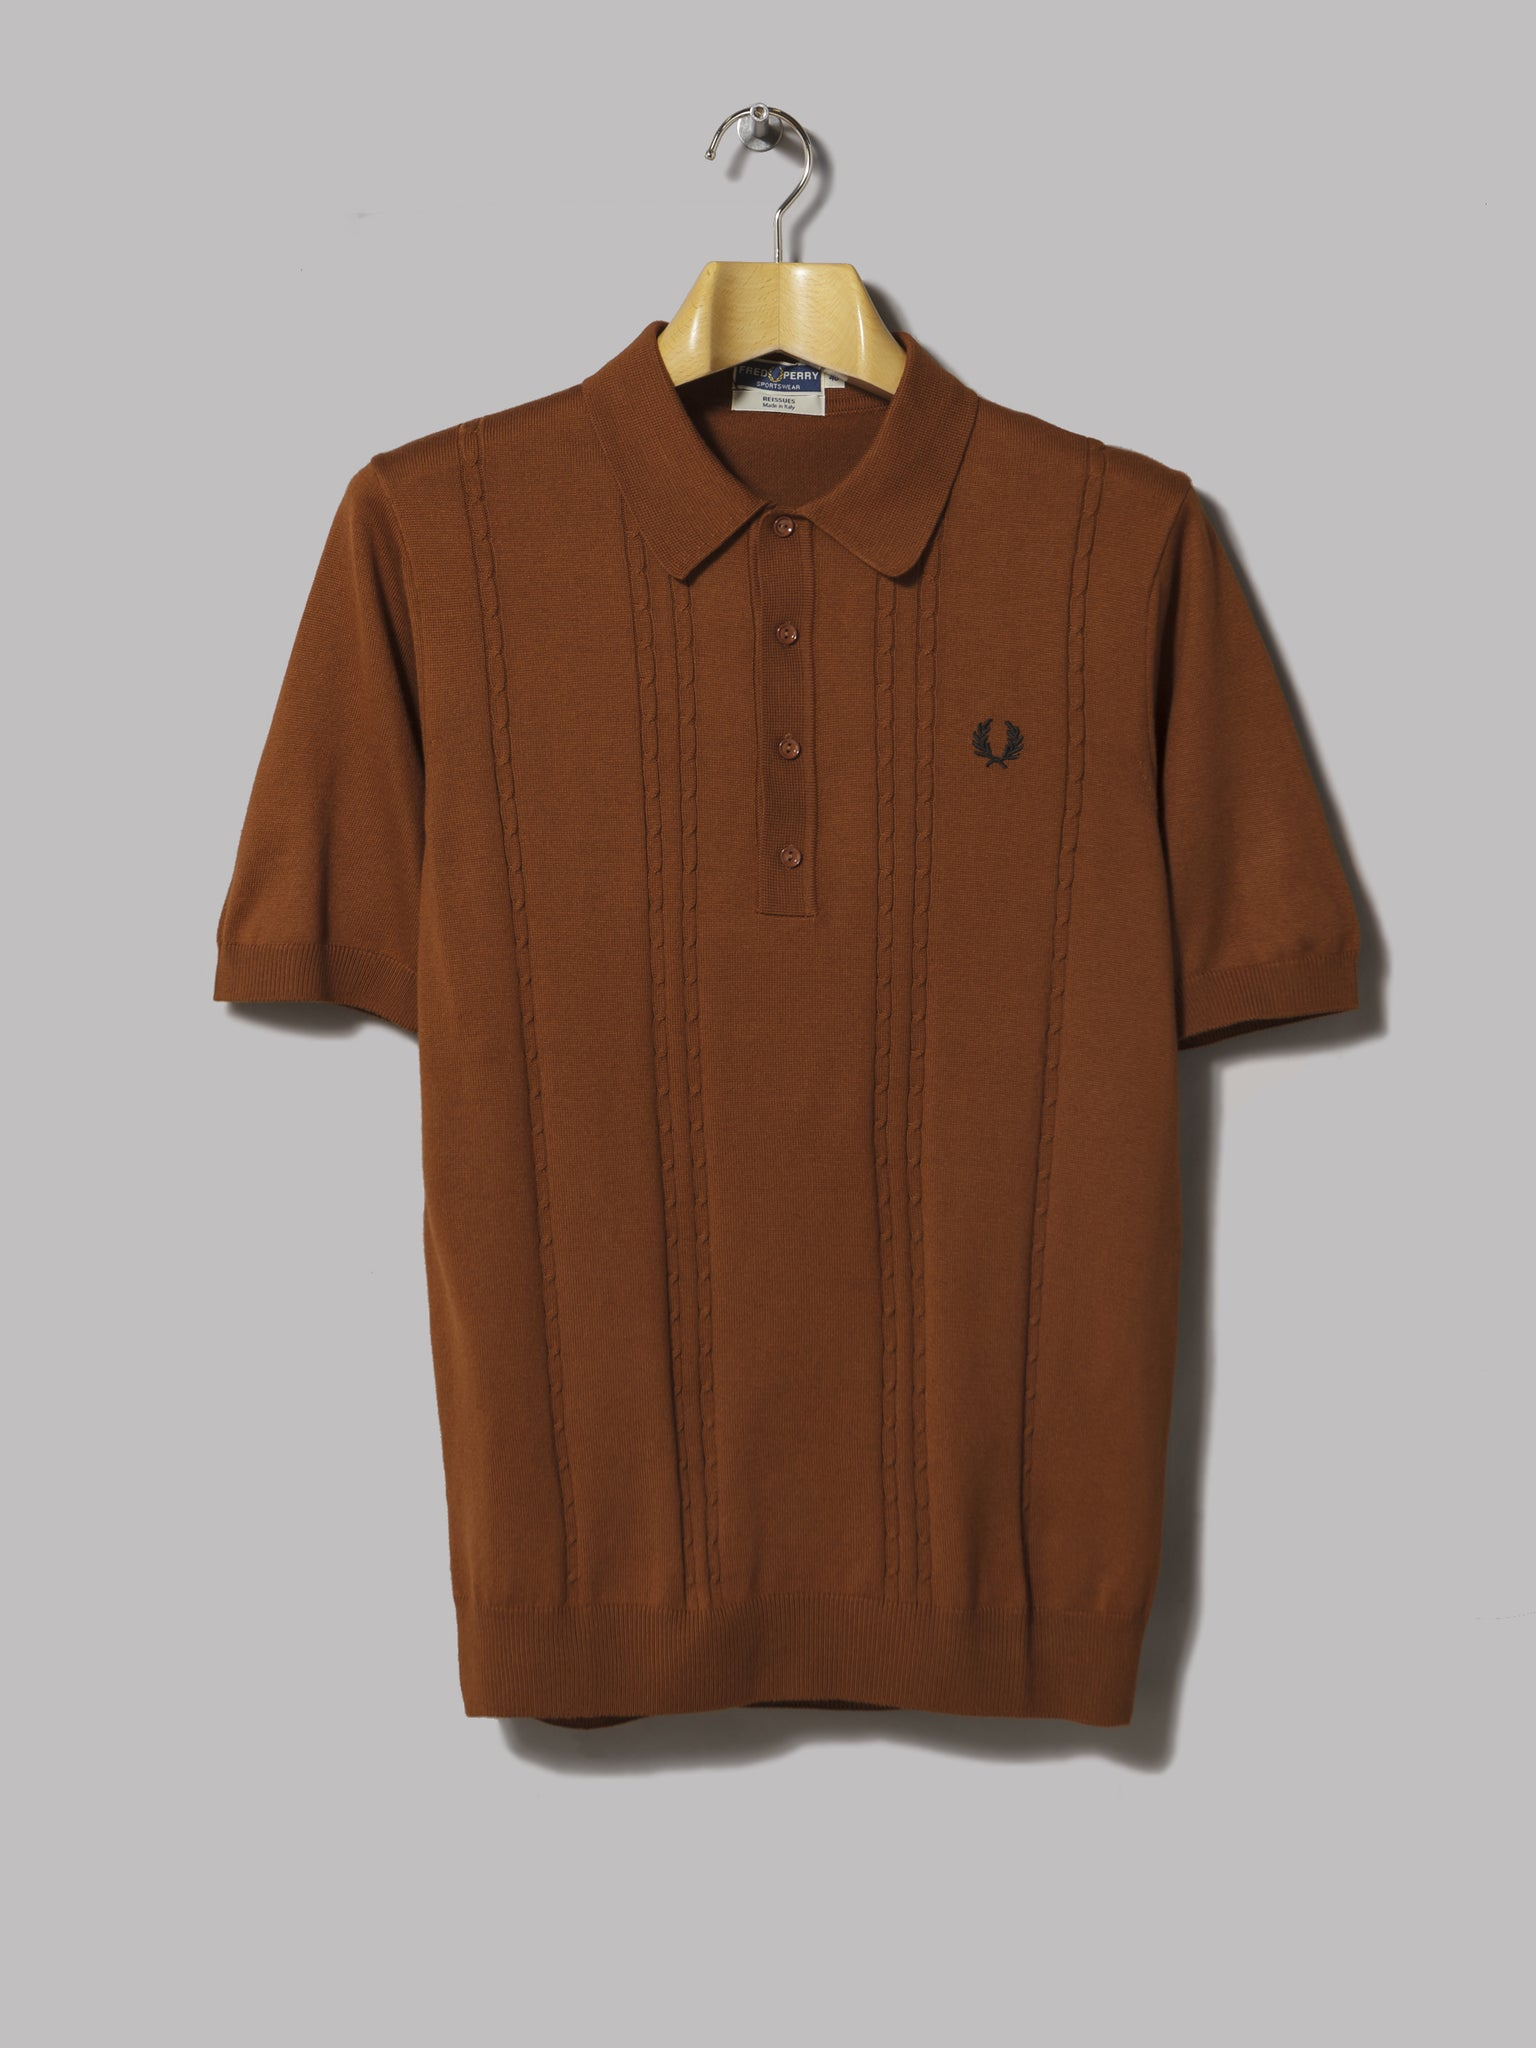 75a2d2316c2ea4 Fred Perry Short Sleeved Cable Knit Shirt (Dark Caramel) – Oi Polloi